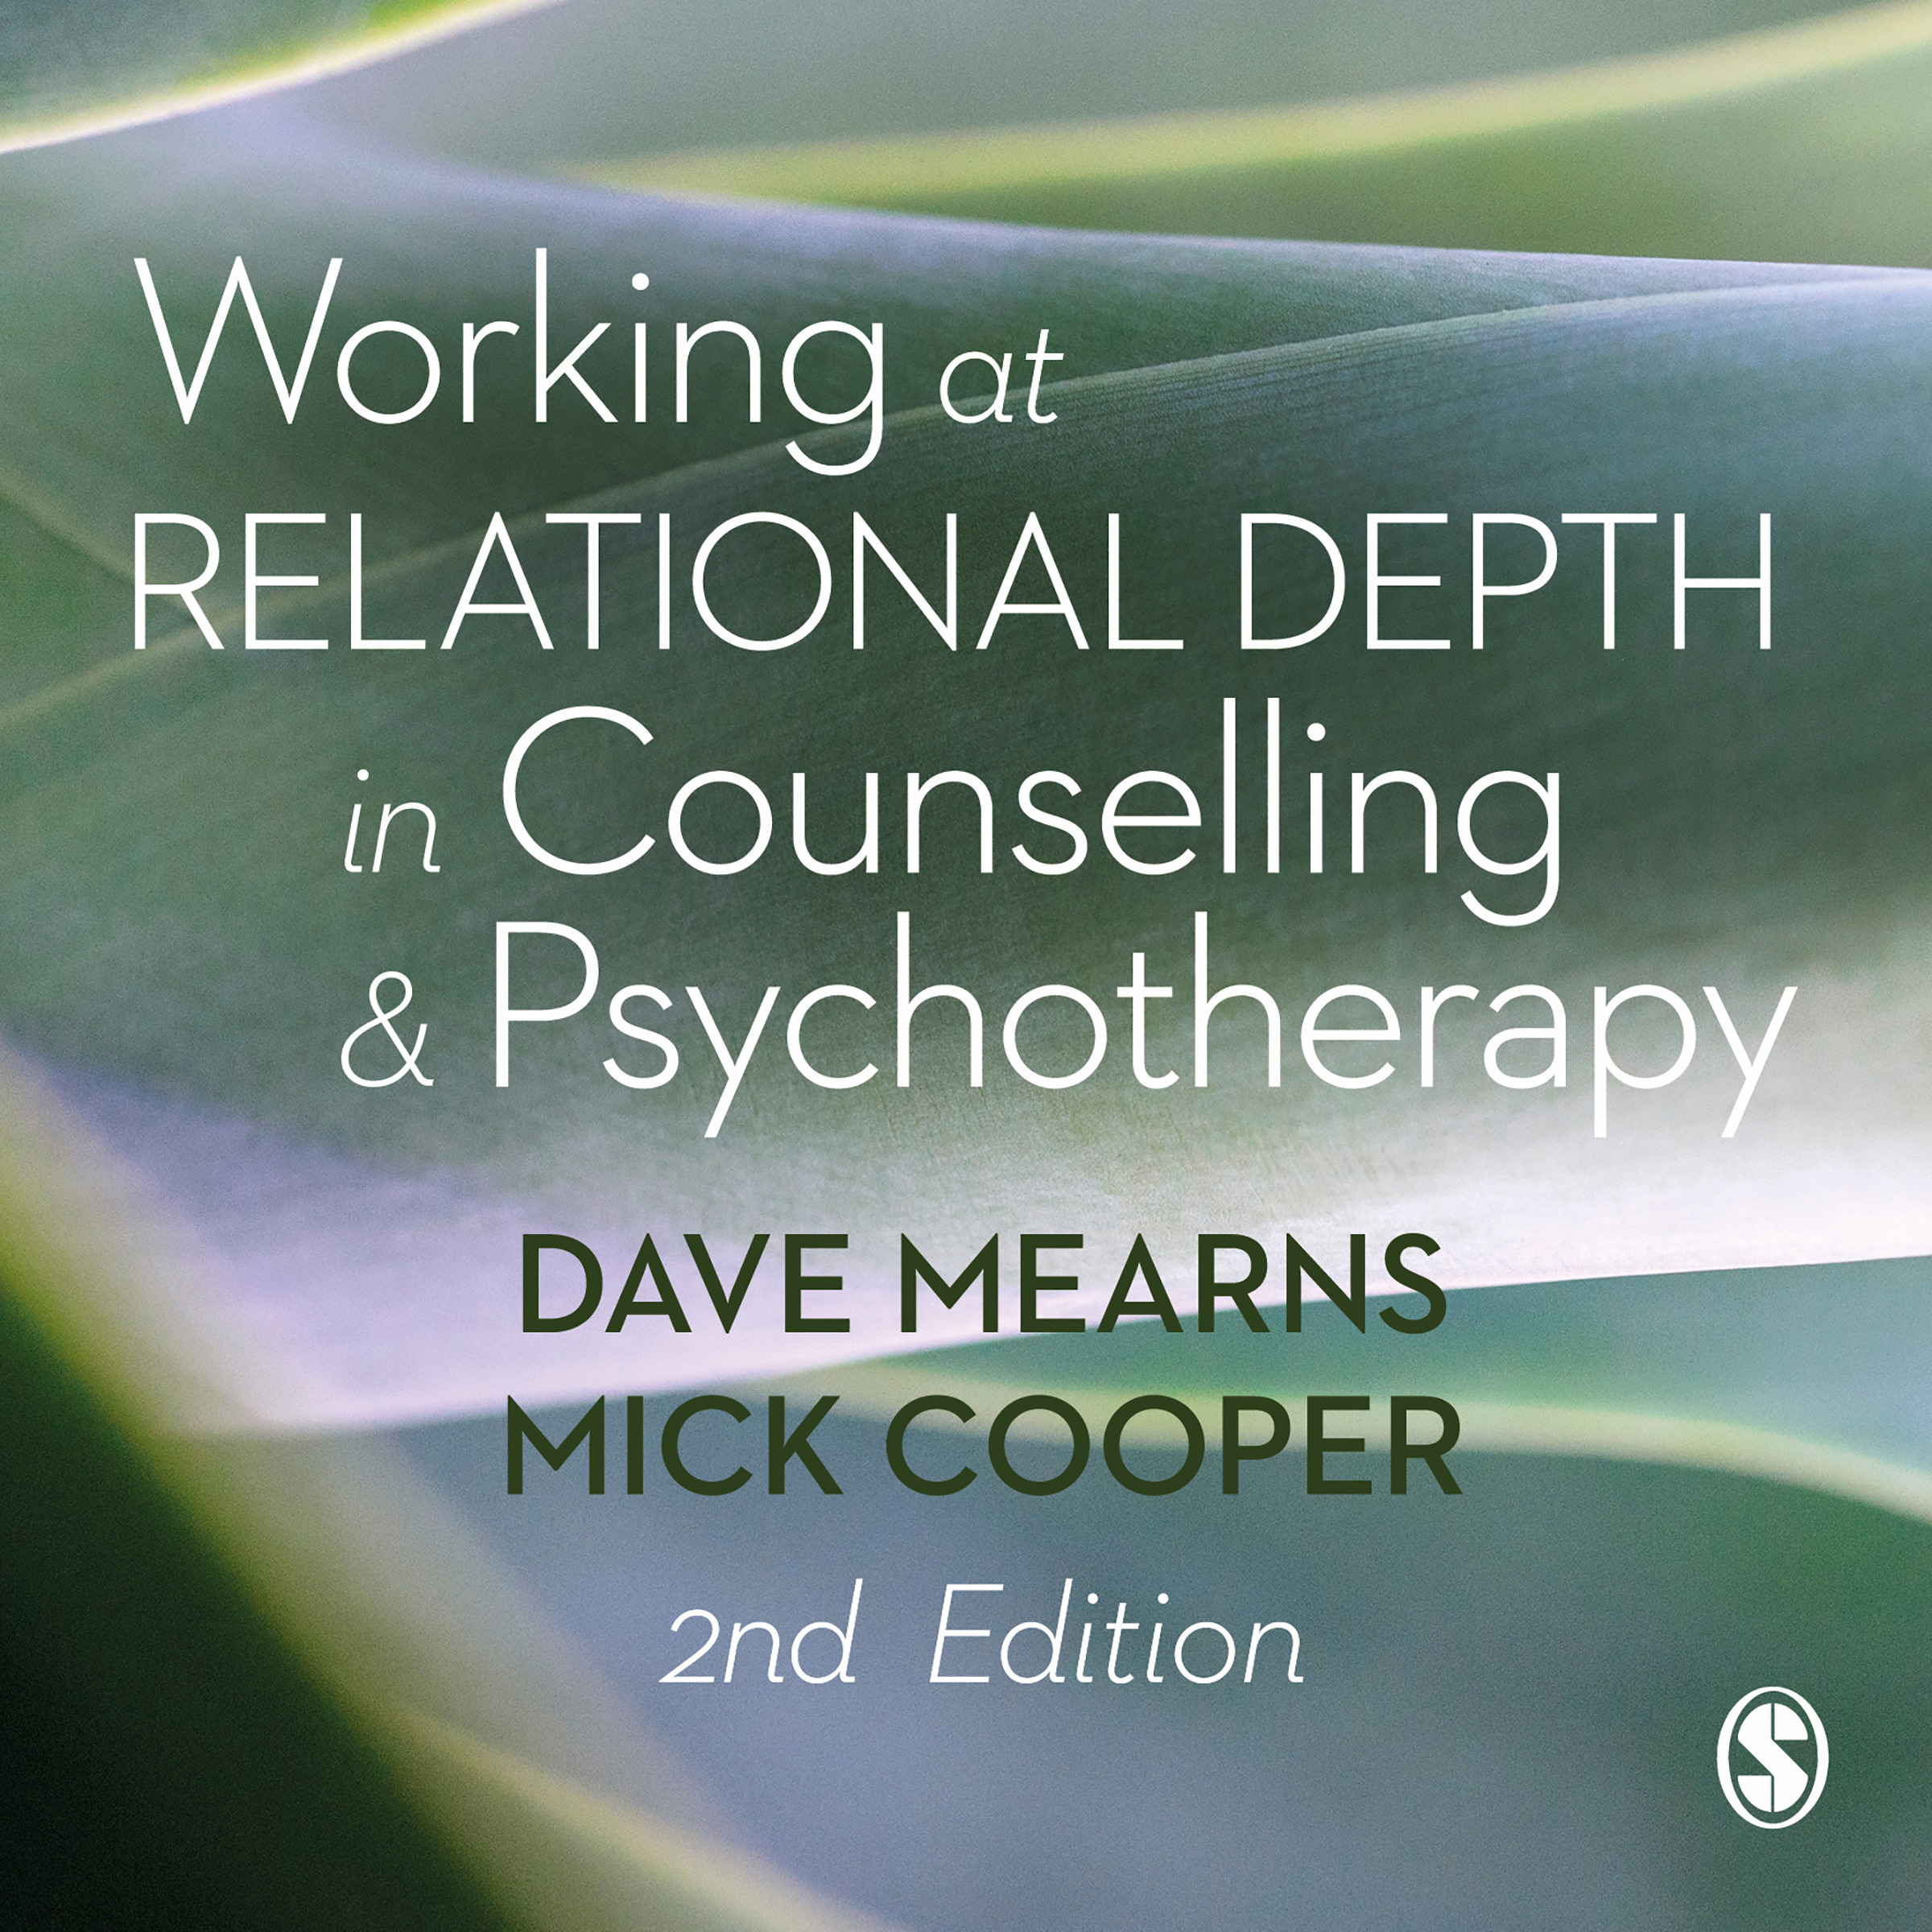 Working at Relational Depth in Counselling and Psychotherapy image